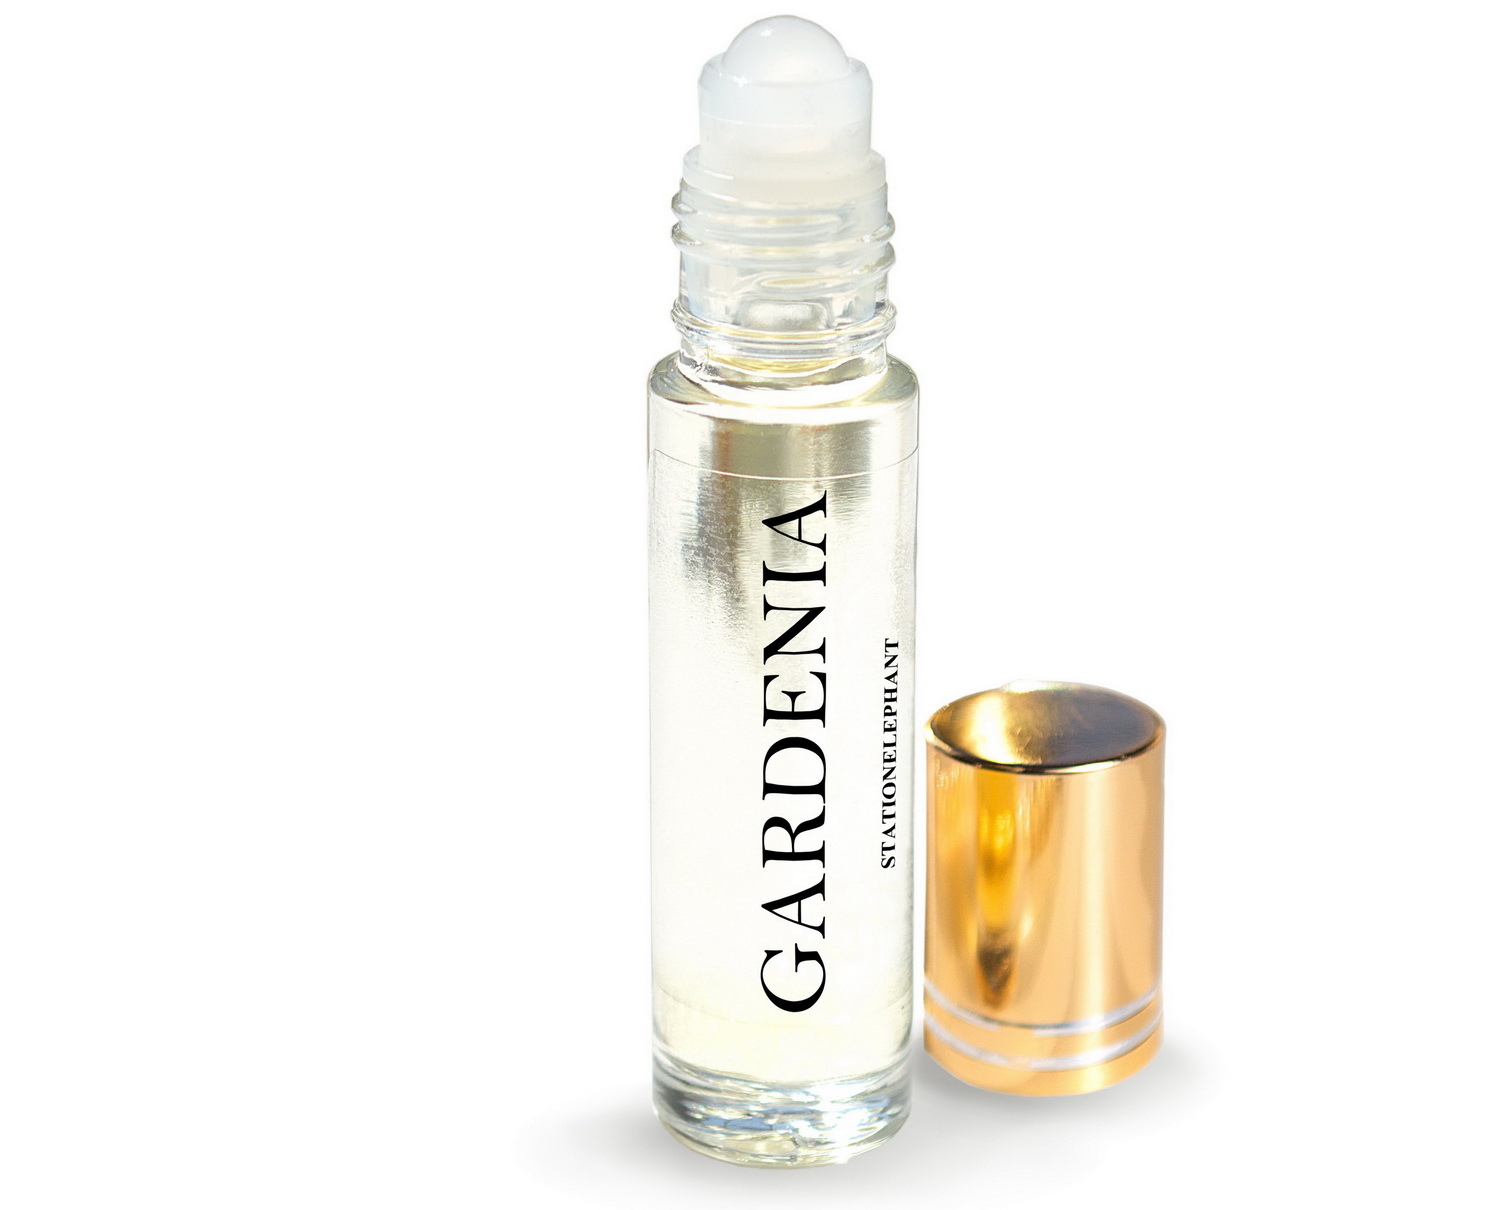 GARDENIA Vegan Perfume Oil by StationElephant.